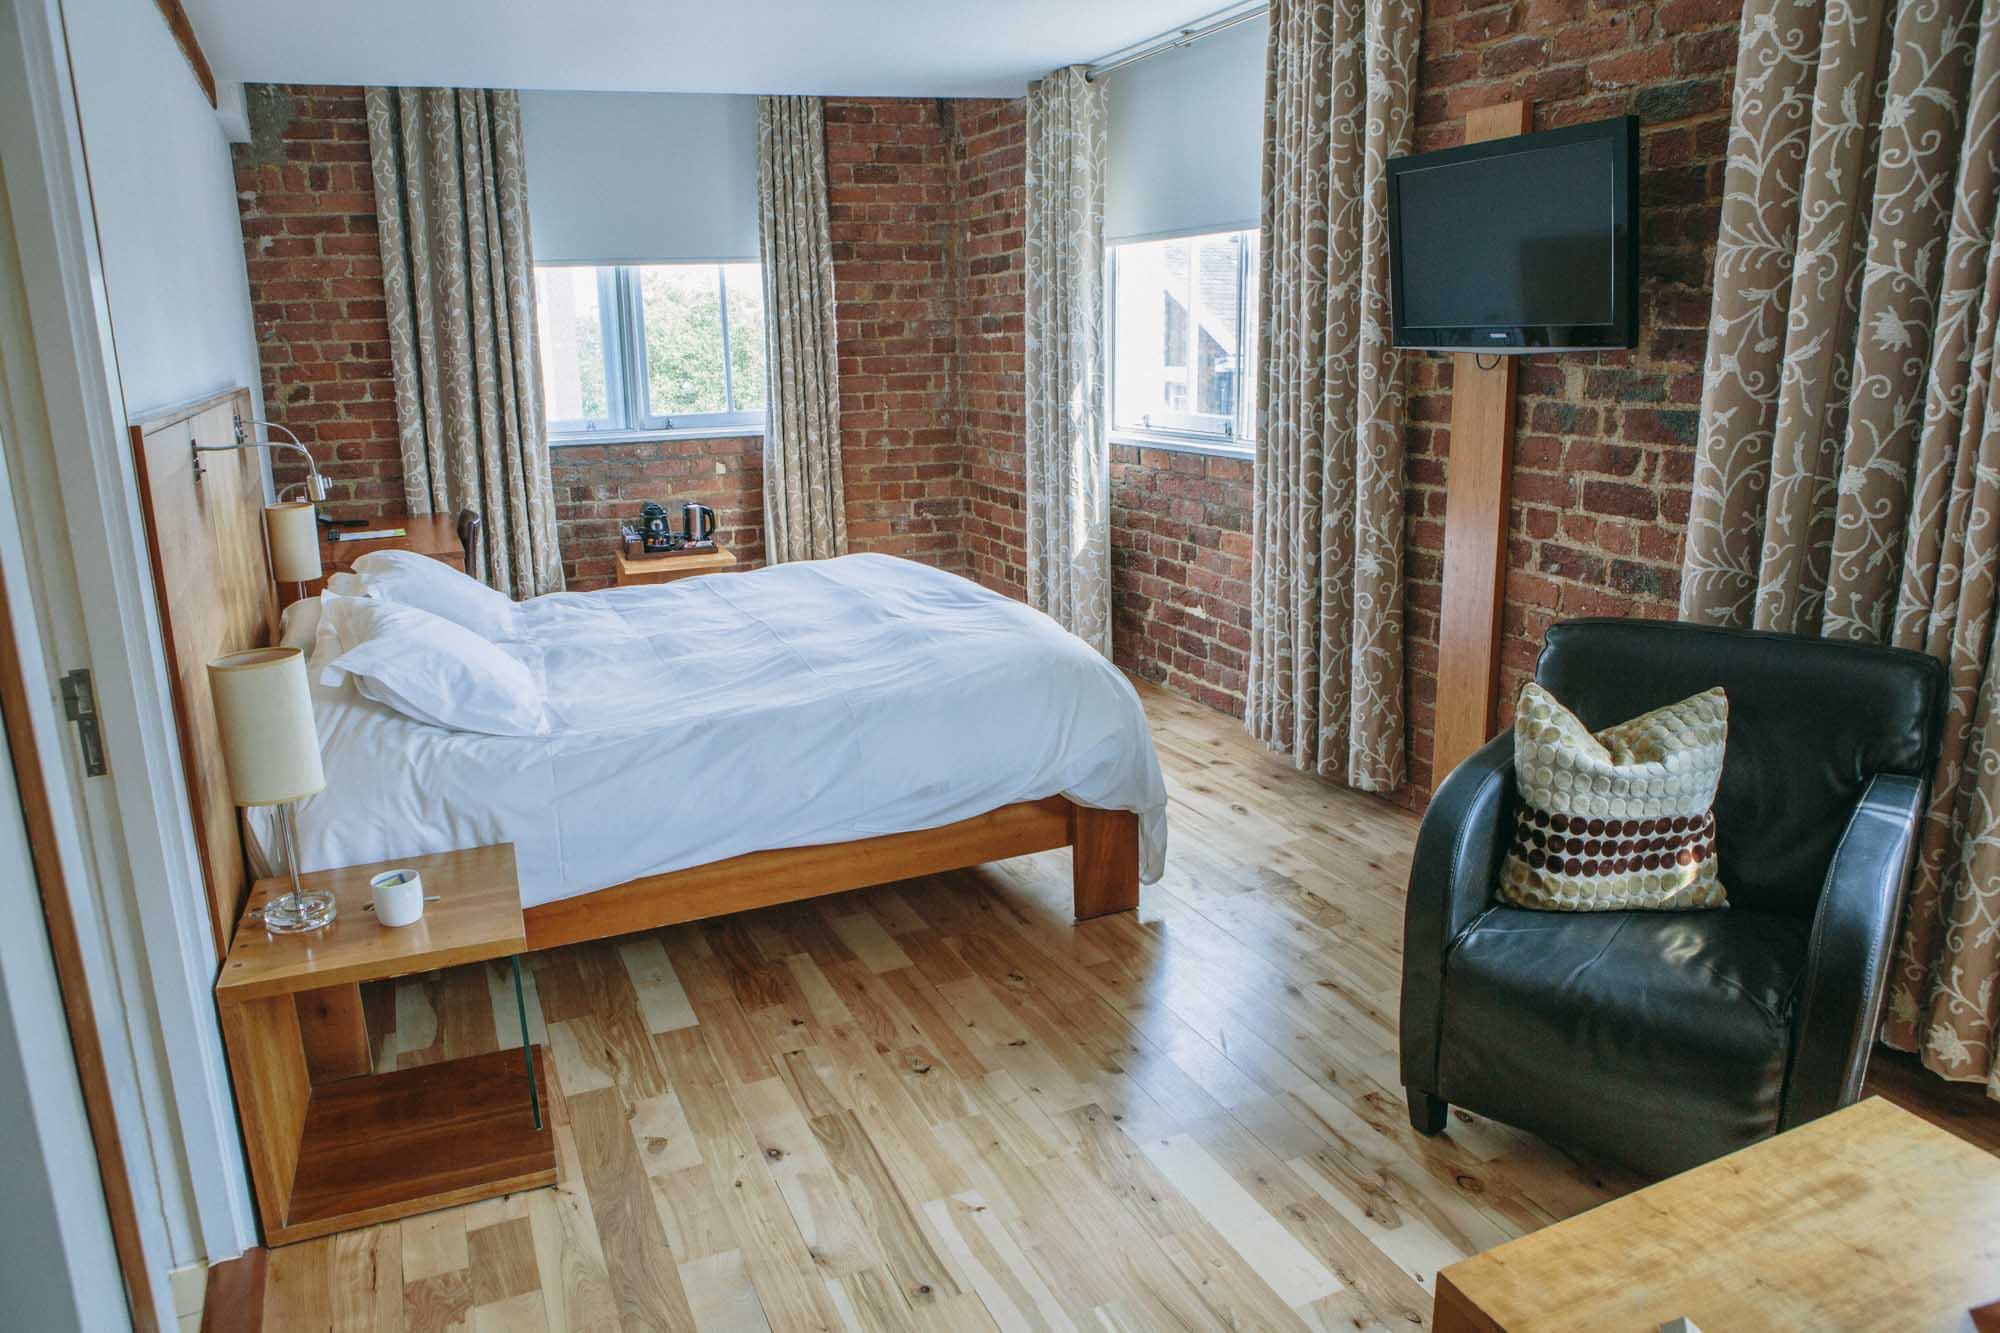 Best hotels in Liverpool – Hope Street Hotel